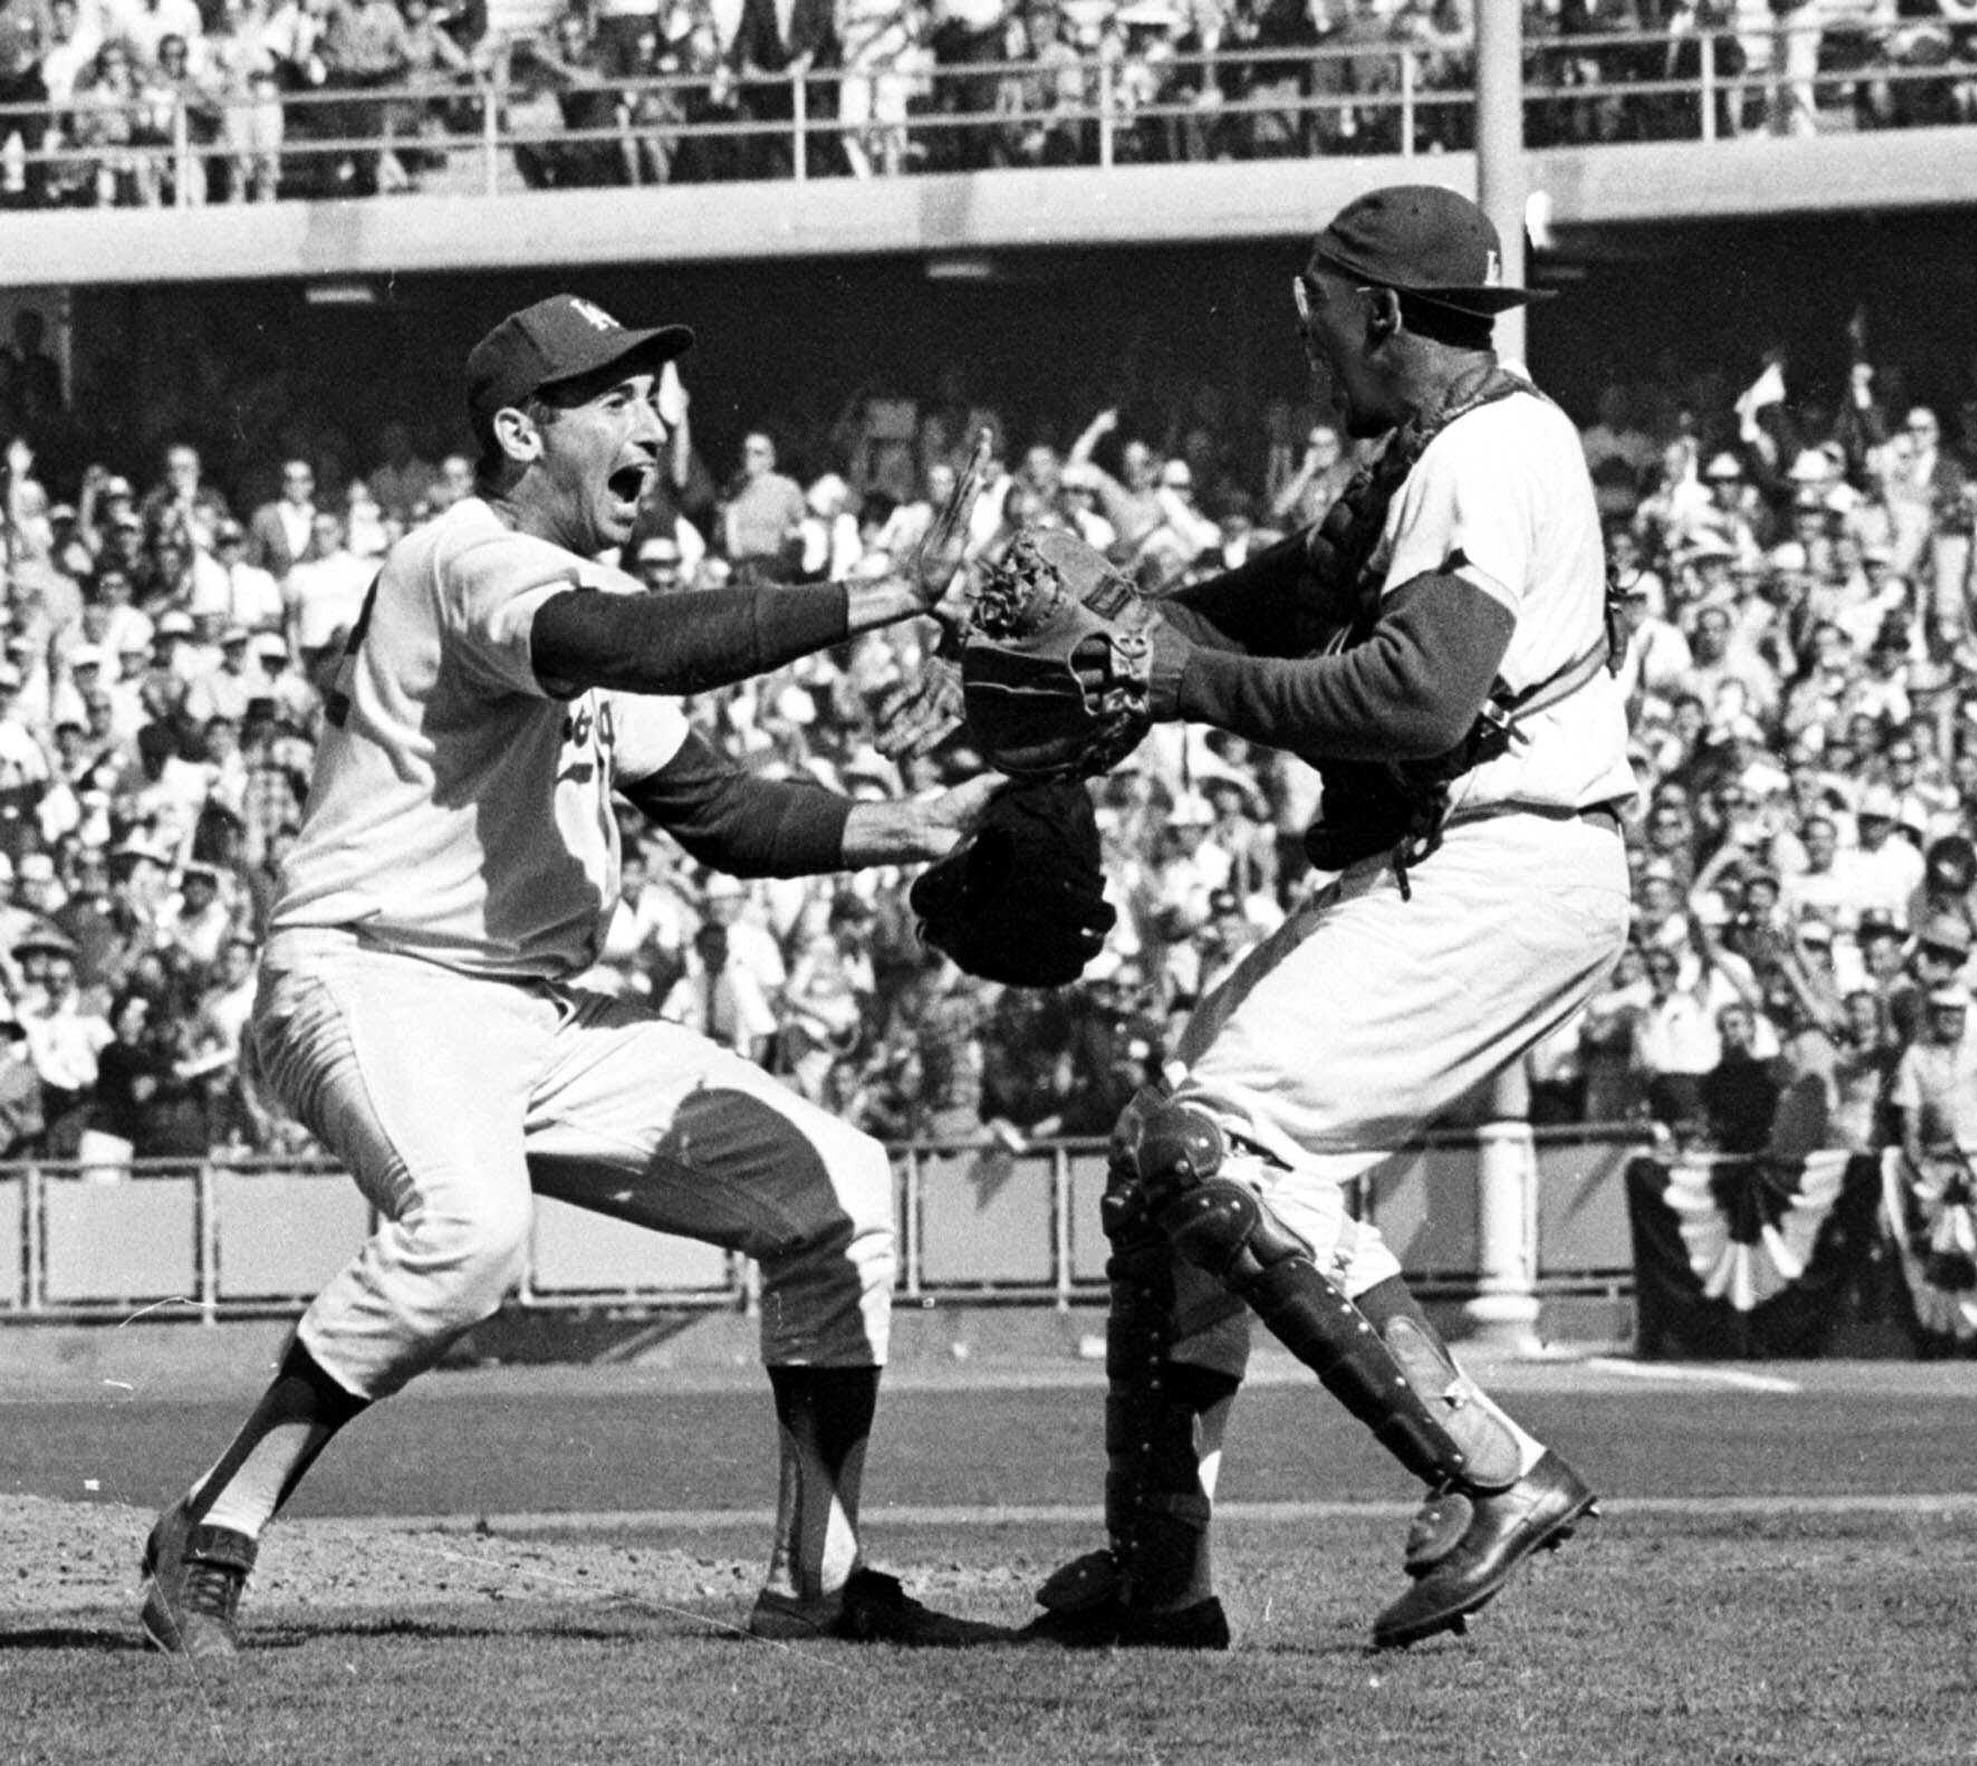 "Pitcher Sandy Koufax, left, and catcher John Roseboro celebrate after the Los Angeles Dodgers beat the New York Yankees, 2-1, to take the 1963 World Series in four games. ""Chasing Dreams,"" a new exhibit in a Philadelphia museum focuses on Koufax and other athletes who have faced discrimination and adversity."